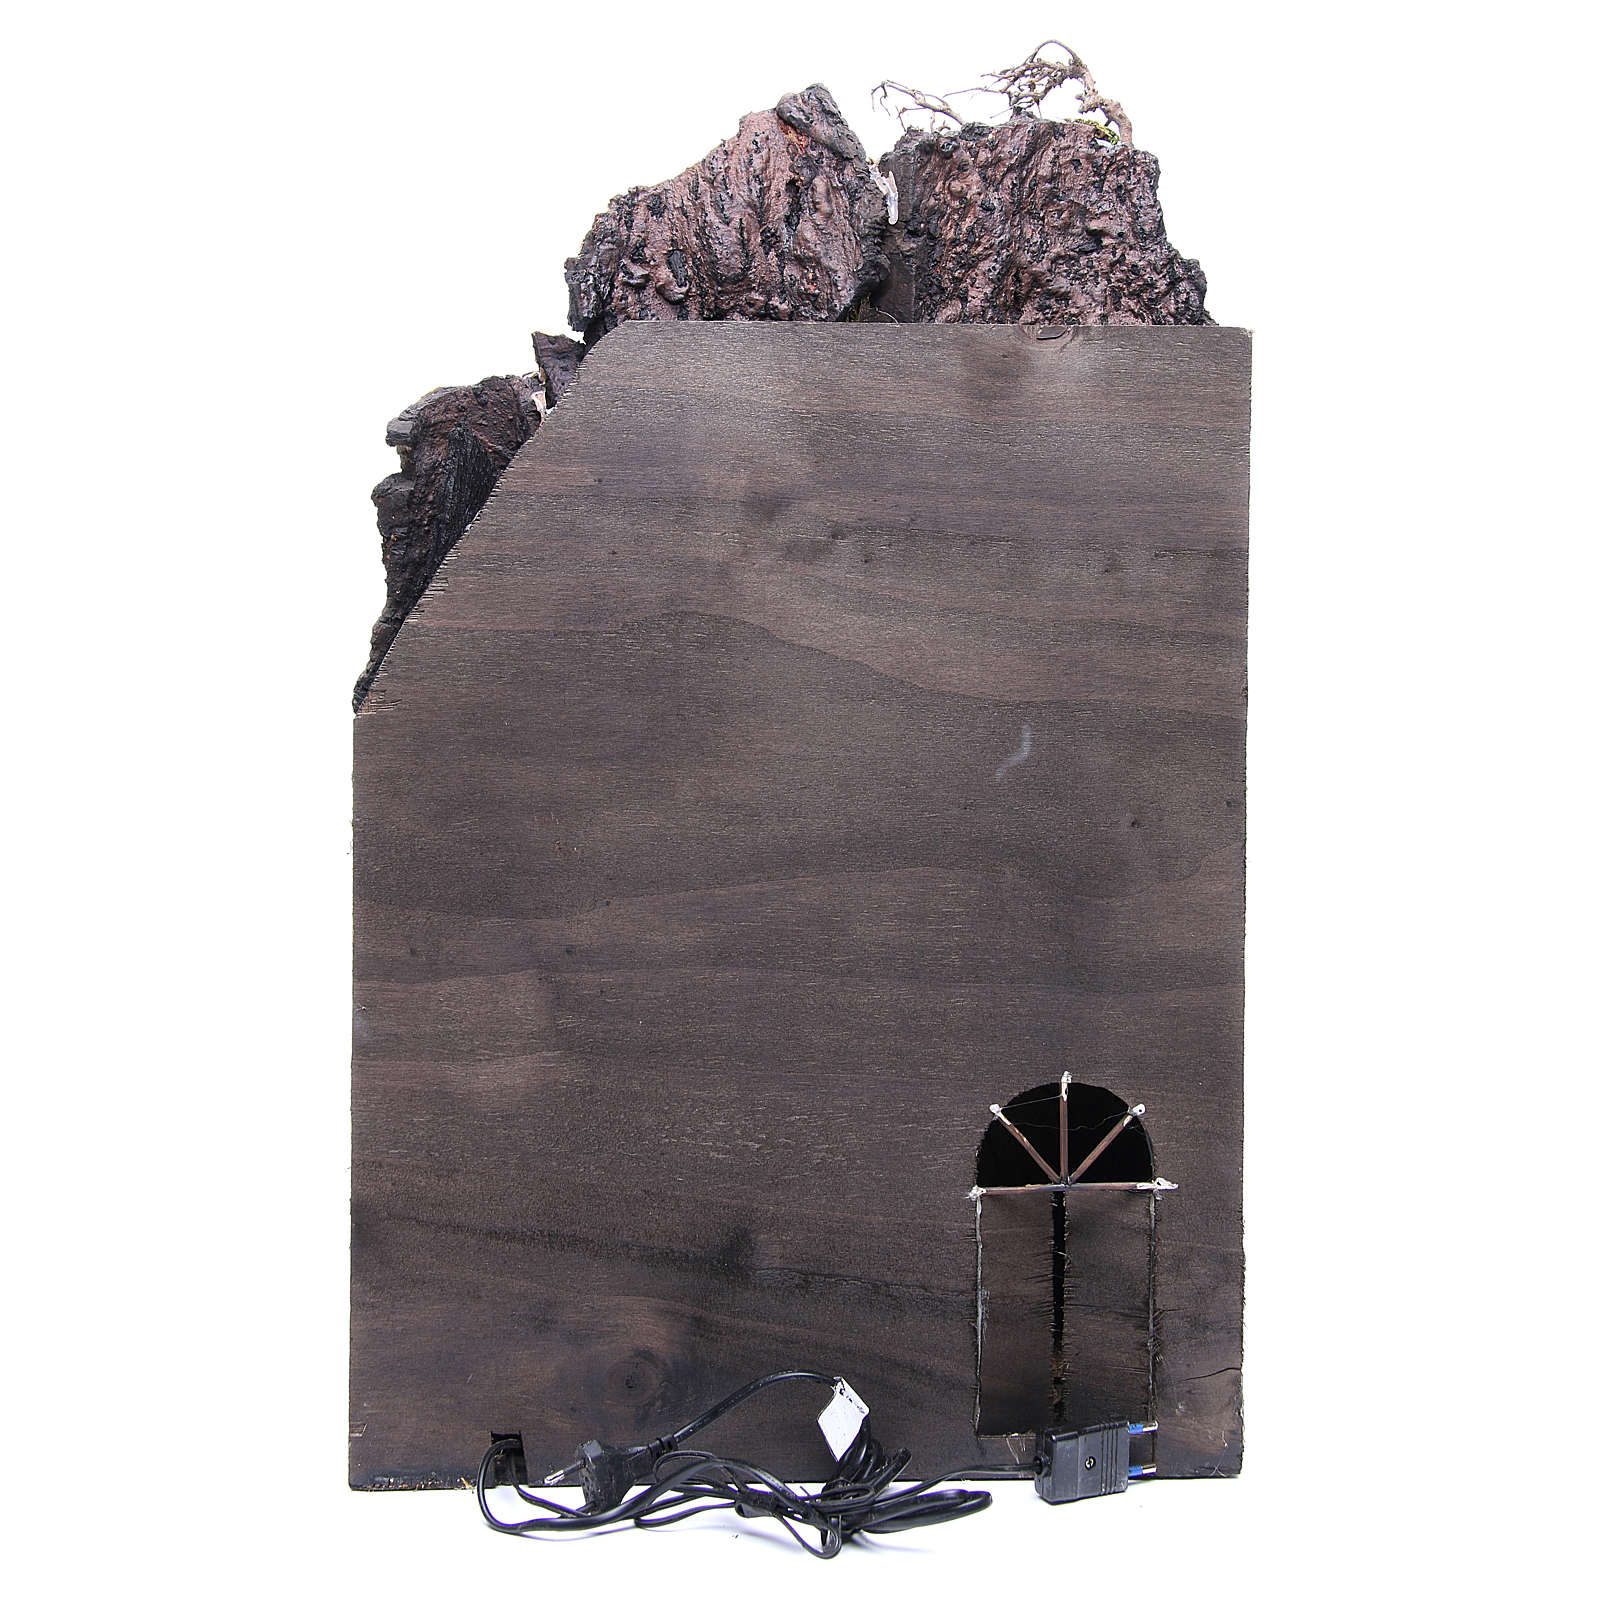 Village for Neapolitan Nativity with light and fountain measuring 60x40x40cm 4